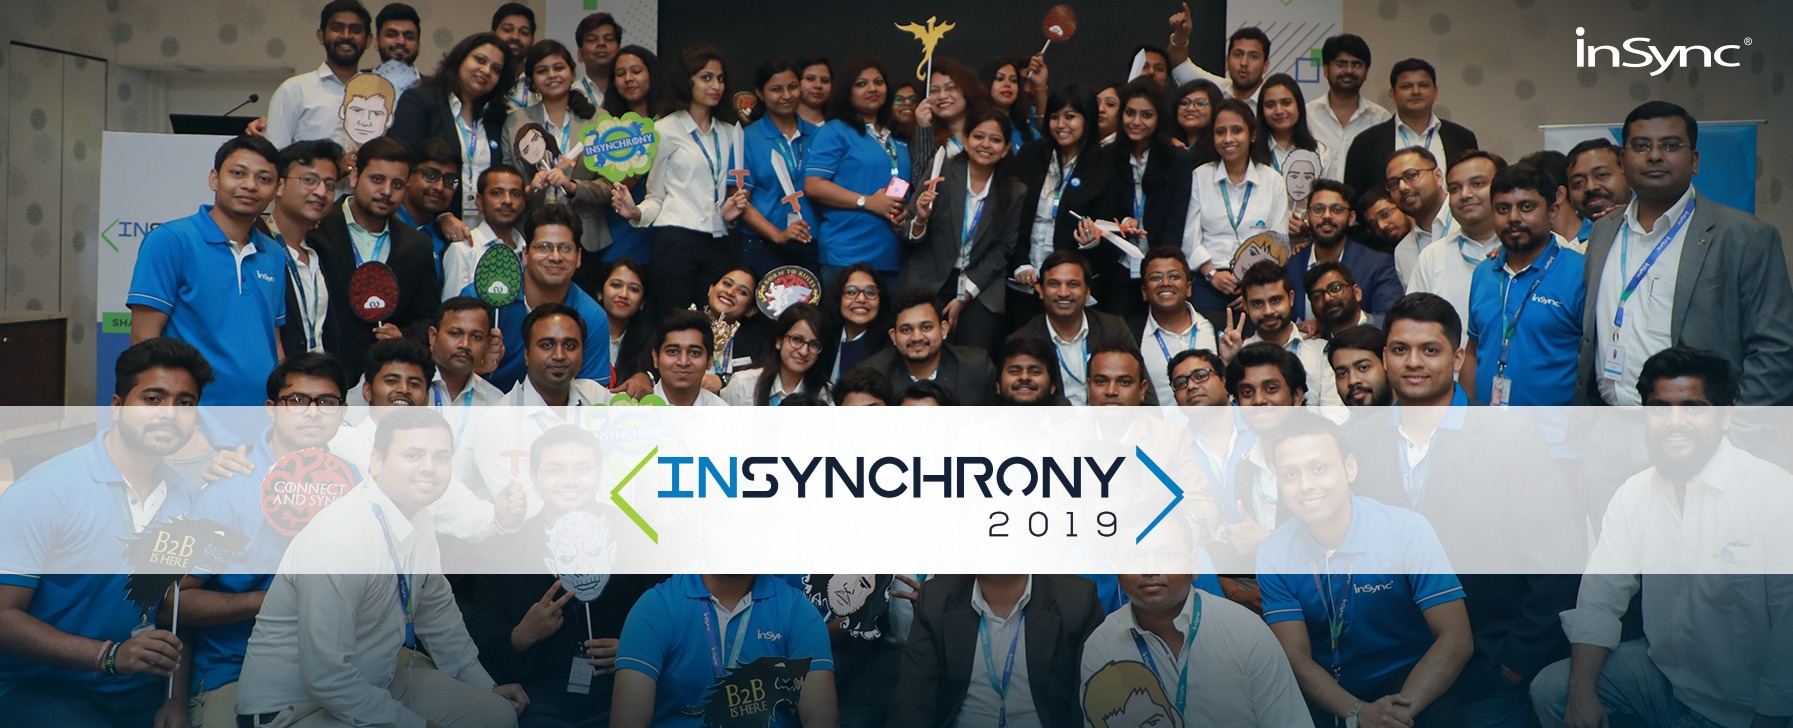 All You Need To Know About InSynchrony 2019